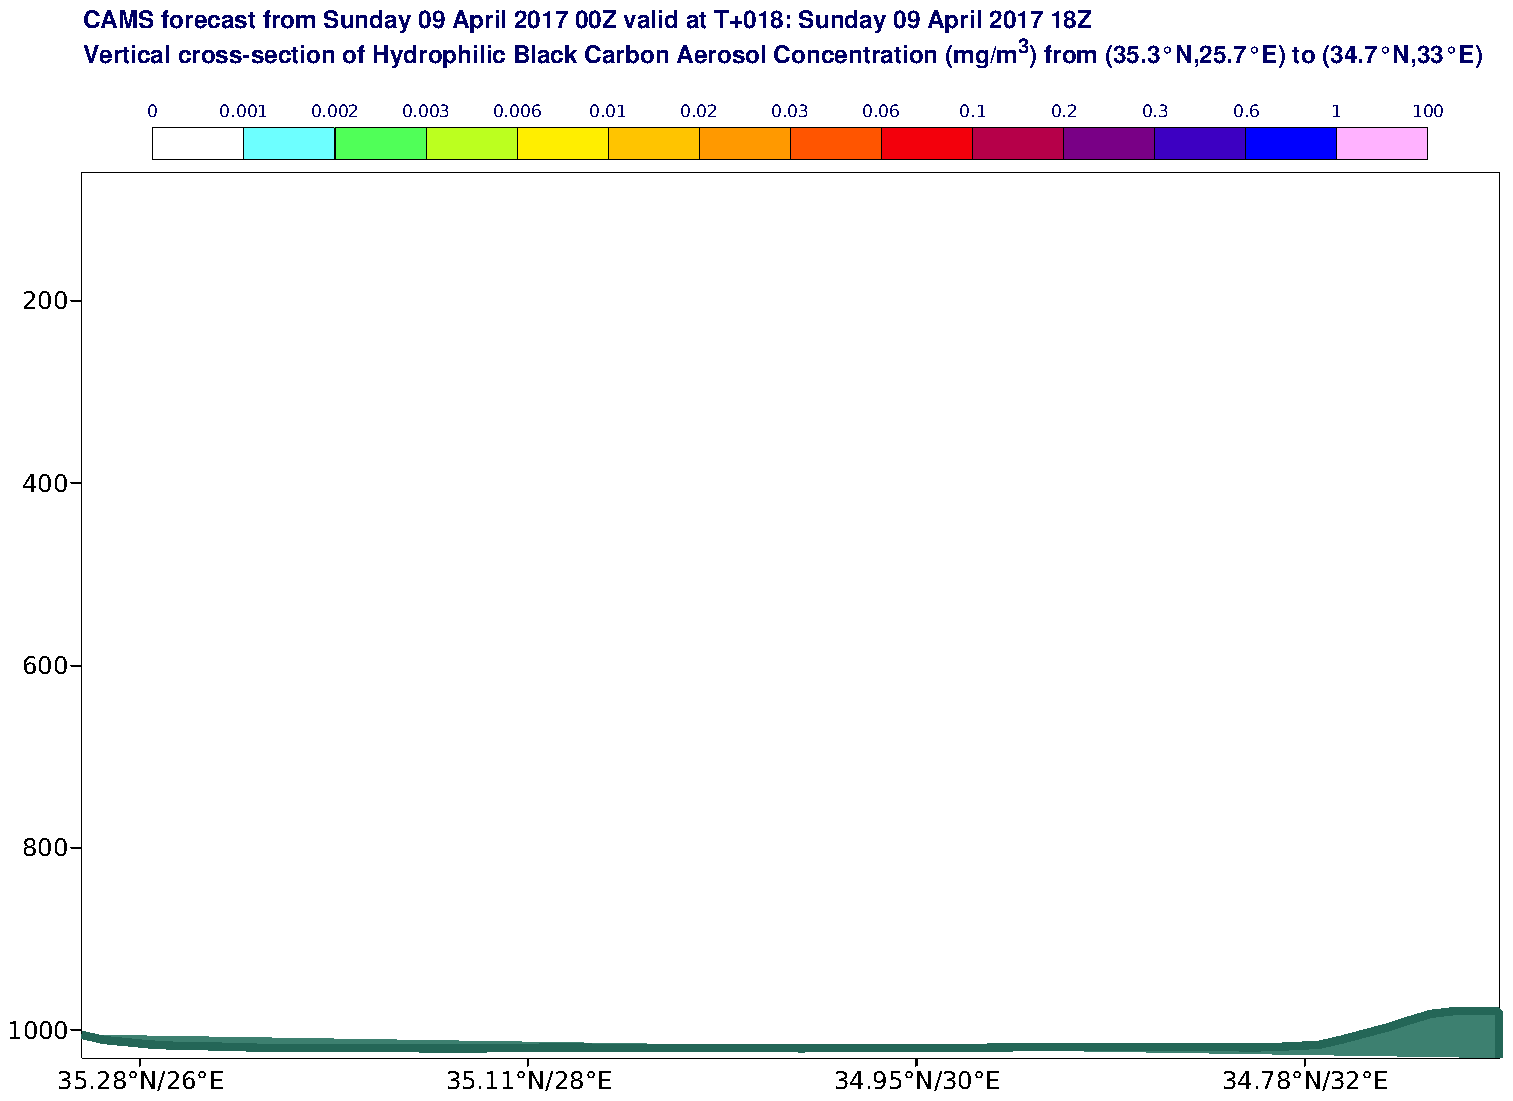 Vertical cross-section of Hydrophilic Black Carbon Aerosol Concentration (mg/m3) valid at T18 - 2017-04-09 18:00